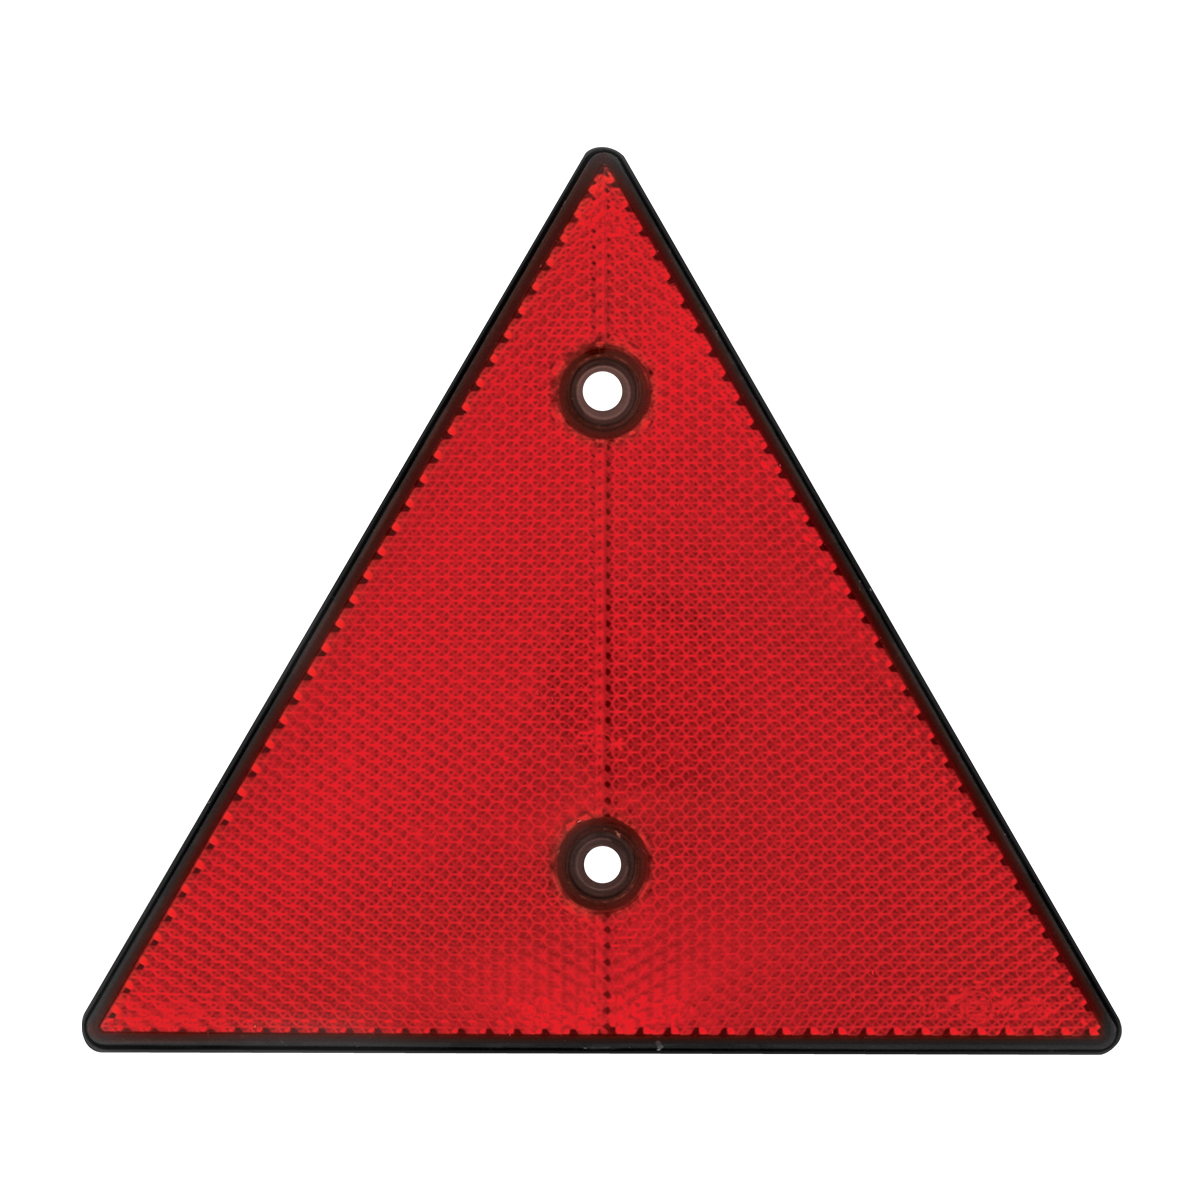 6 Triangle Warning Reflector W 2 Mounting Holes Grand